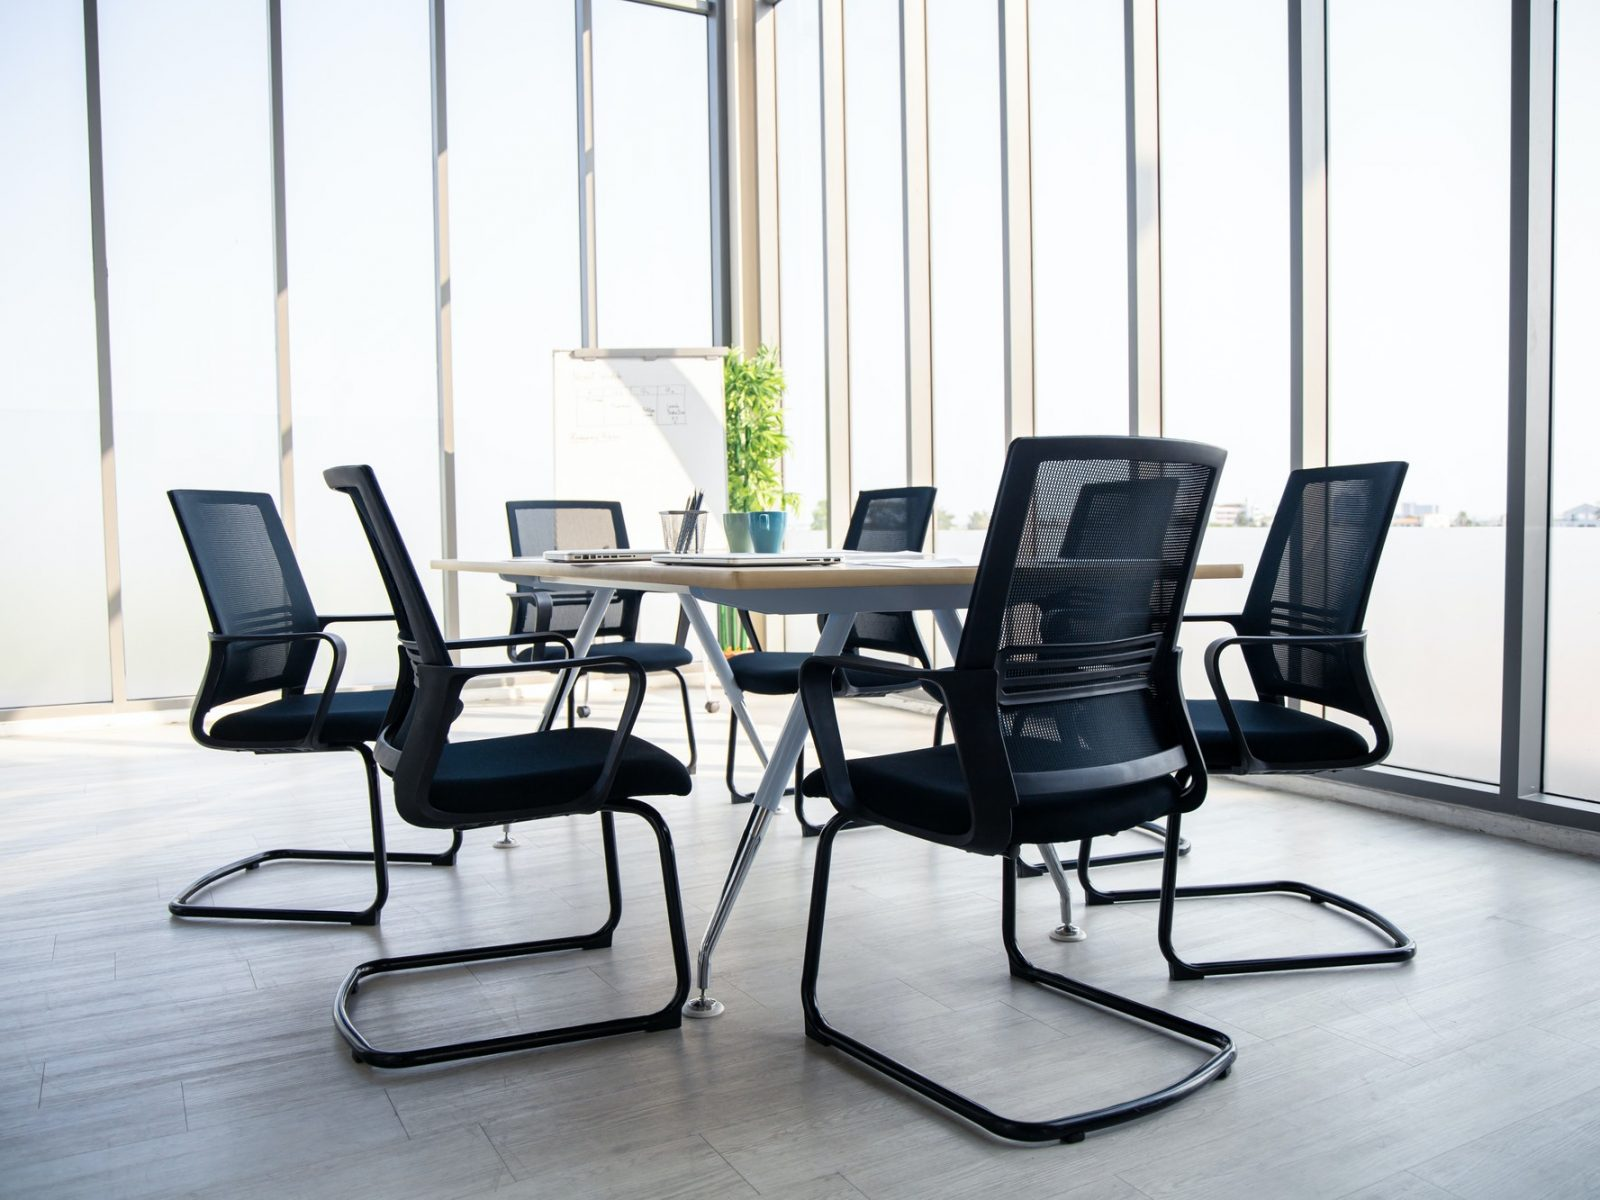 Meeting room in the style of the modern.